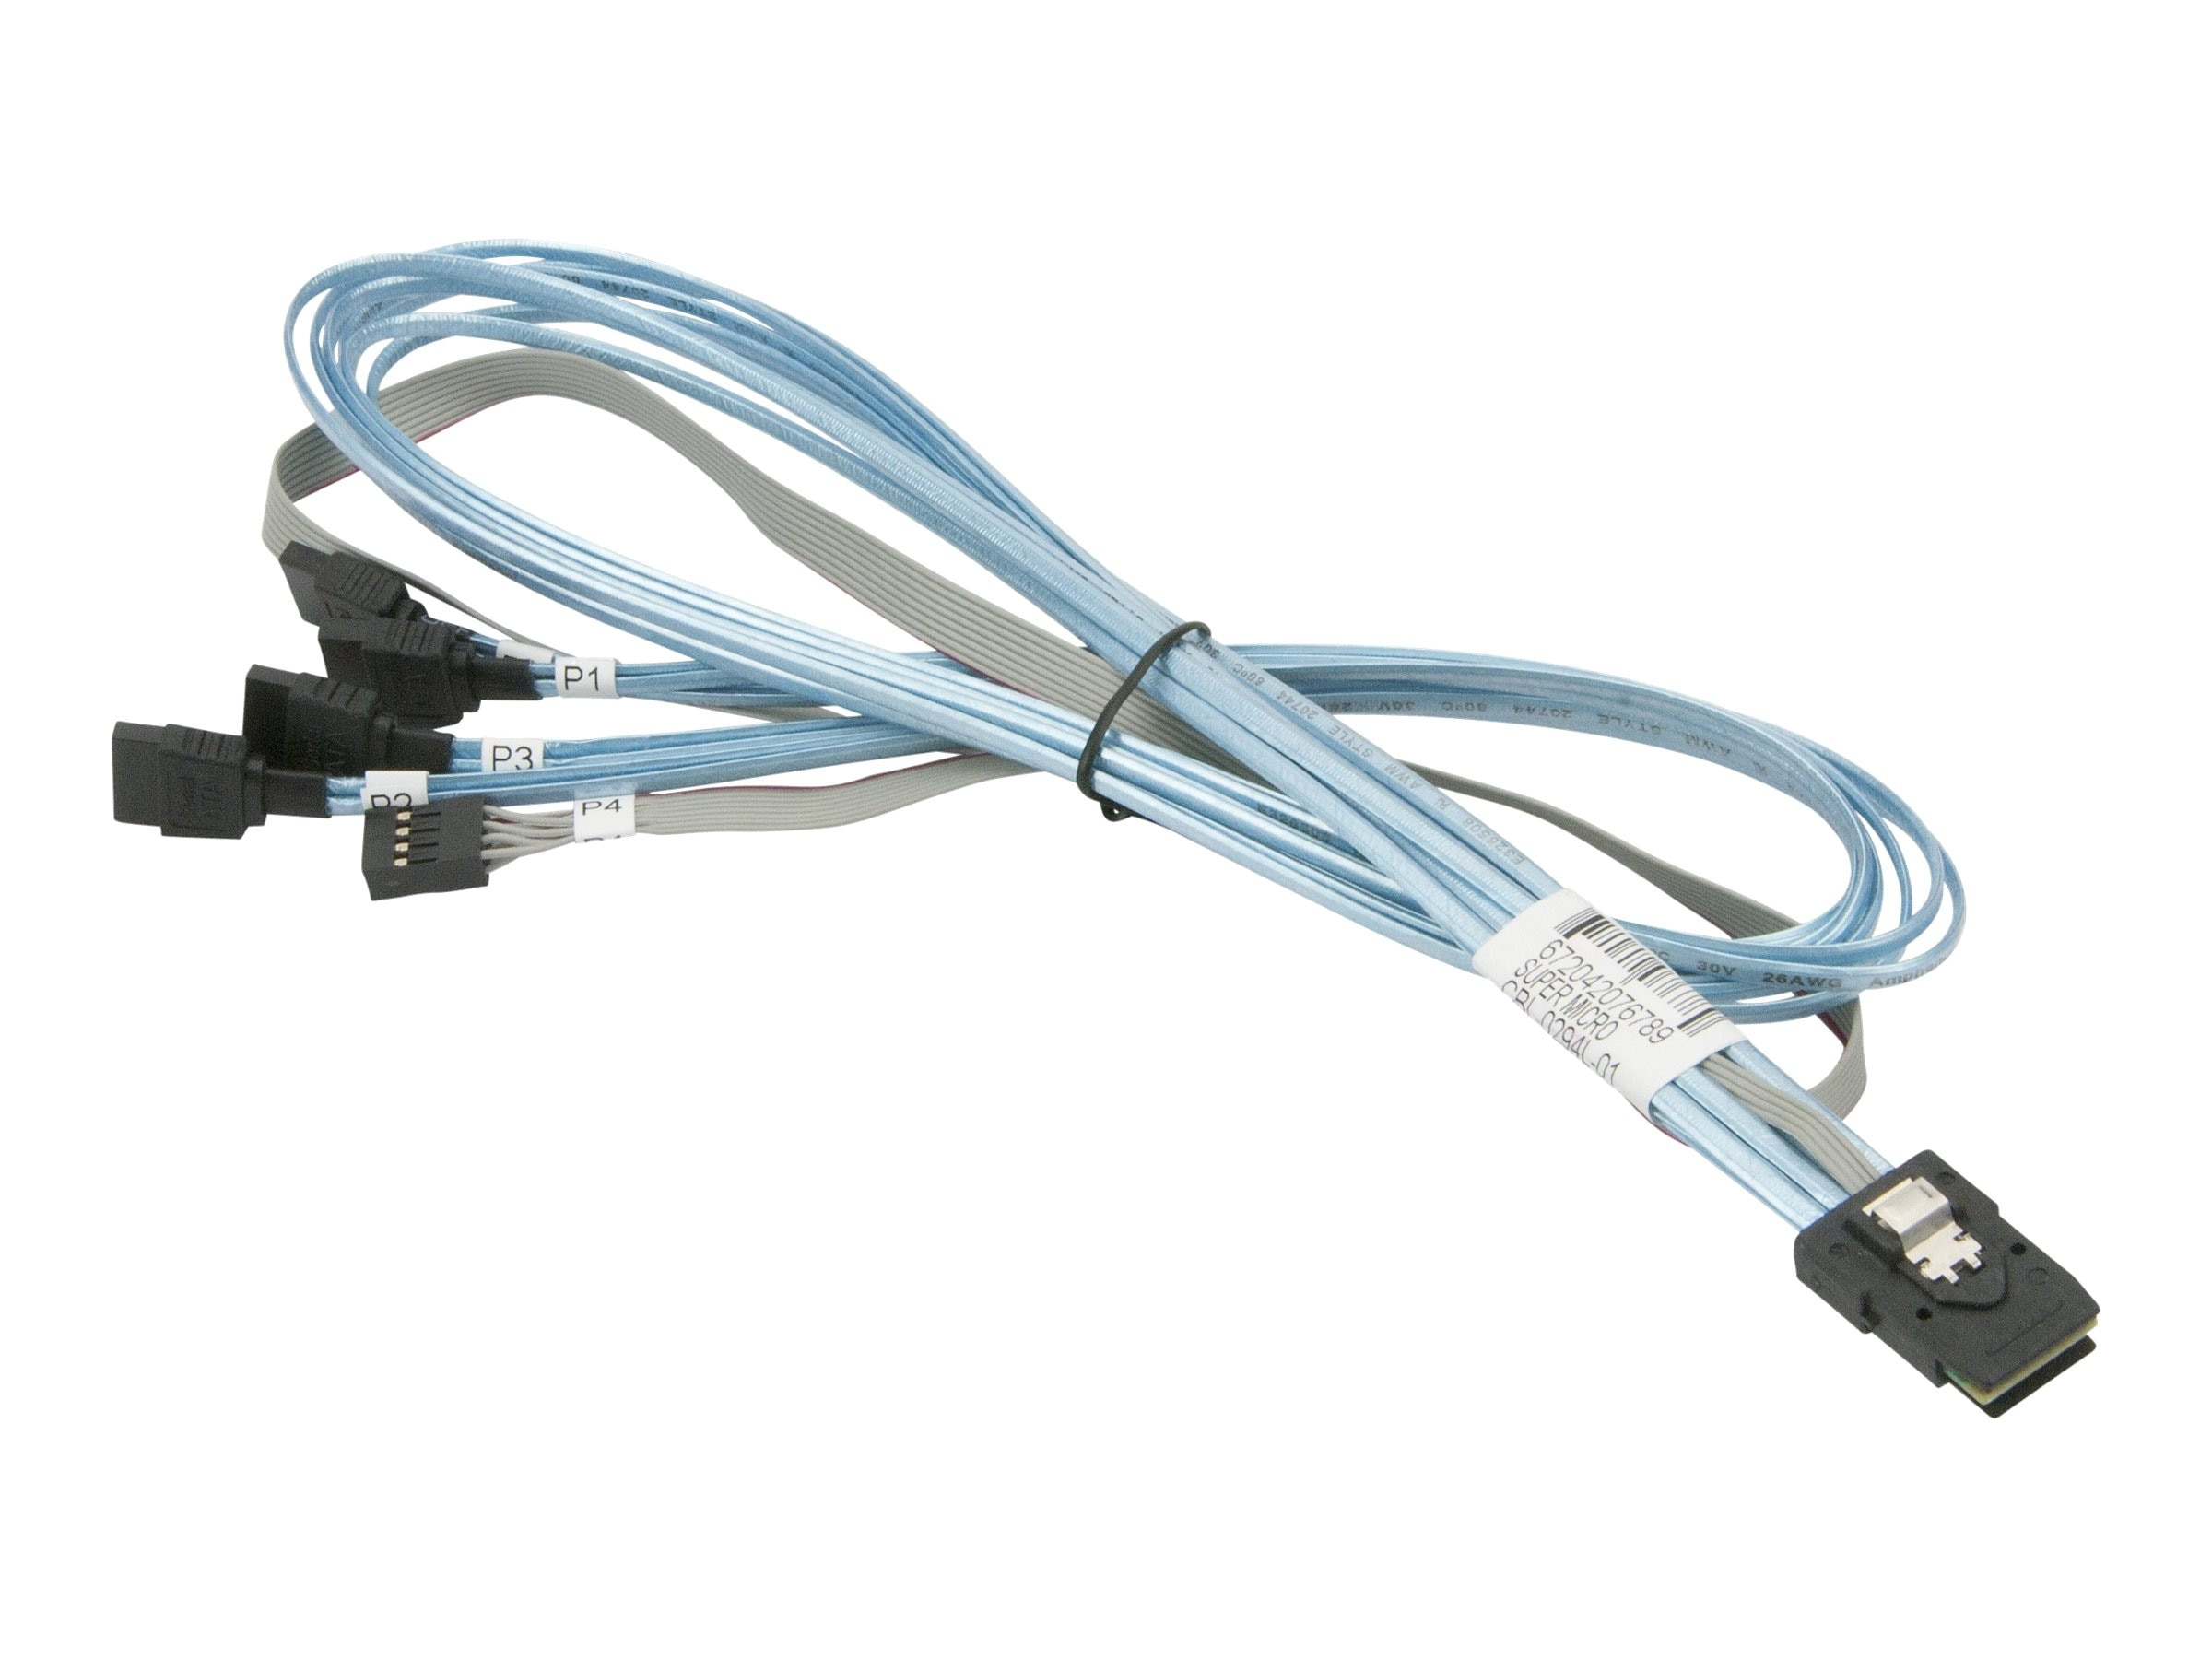 Supermicro Ipass to Sata Data Crossover Cable, 2.3ft, CBL-0294L-01